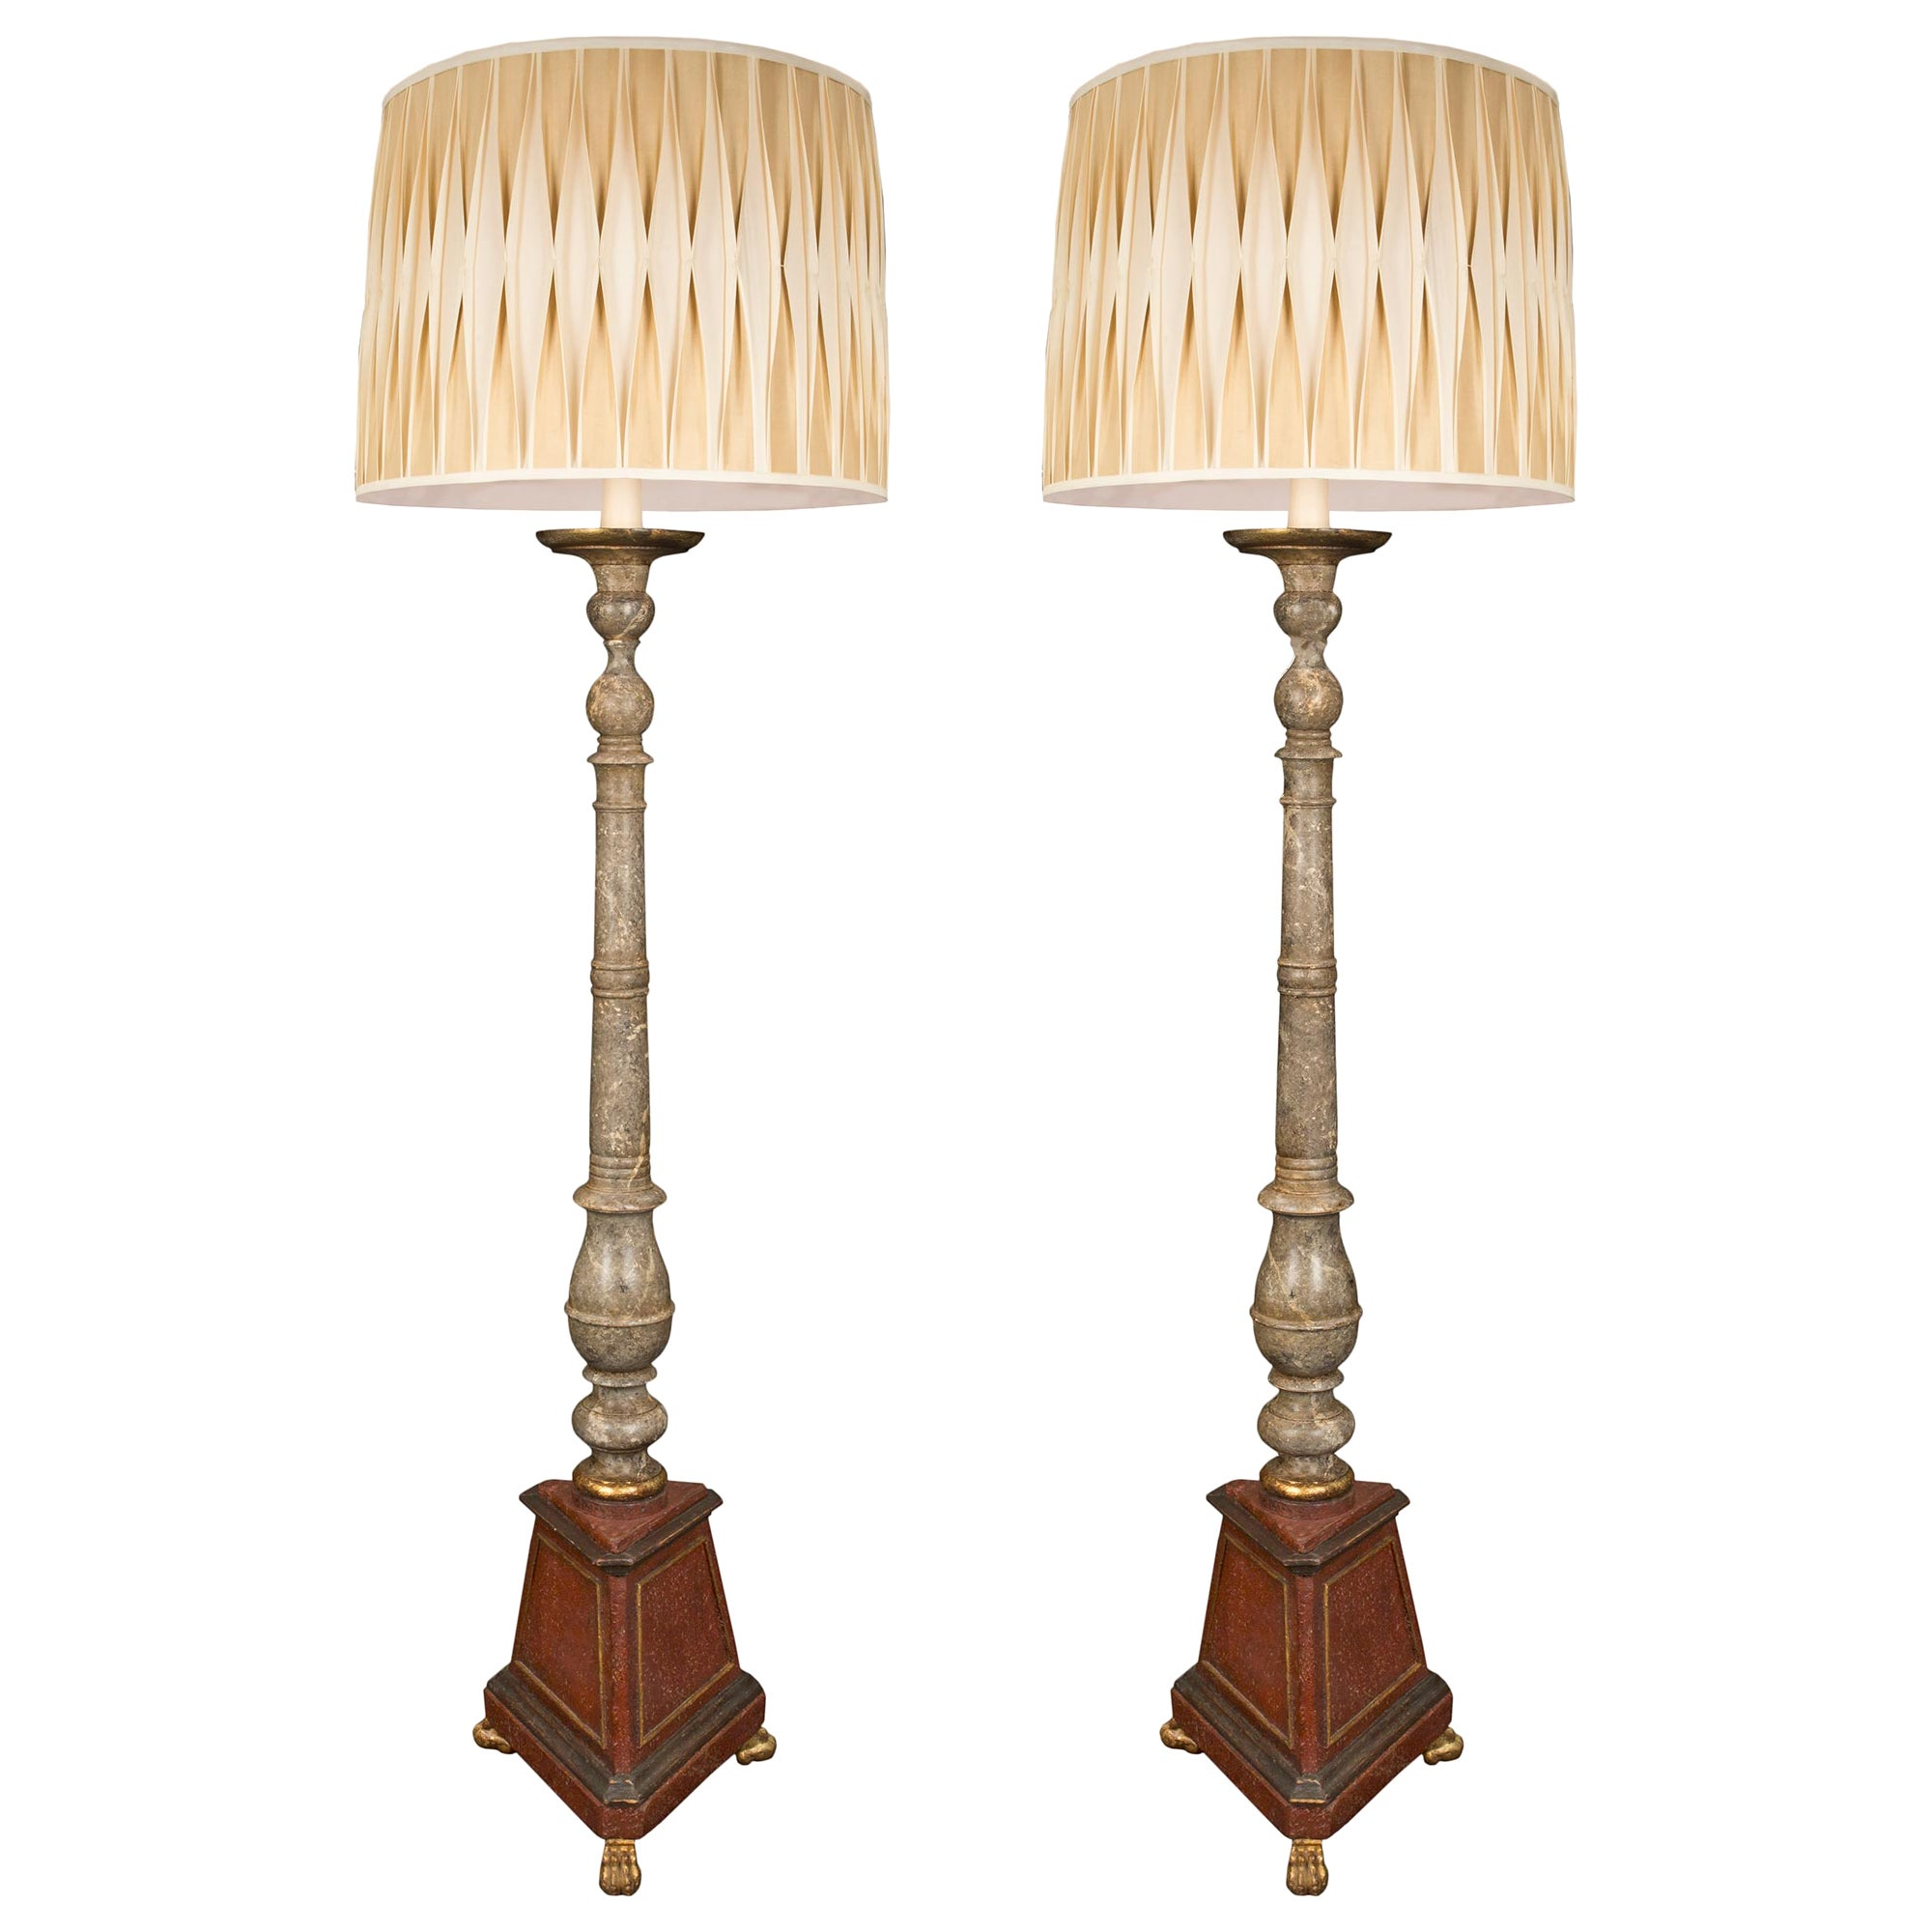 Pair of Italian 19th Century Faux Painted Marble Floor Lamps